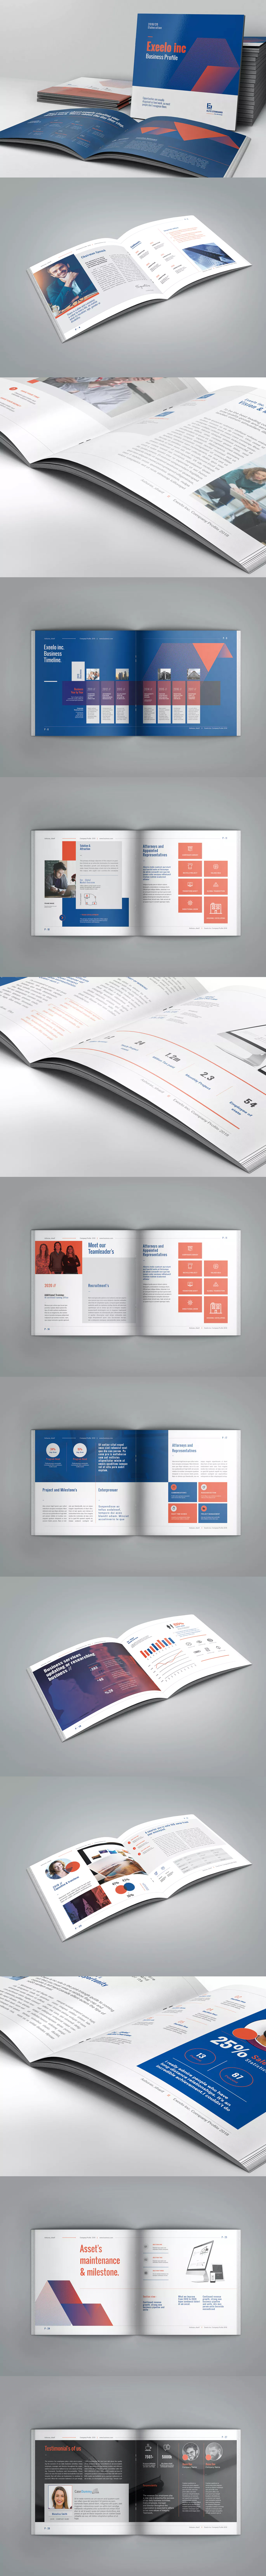 Square Profile Brochure Template InDesign INDD | Brochure Templates ...